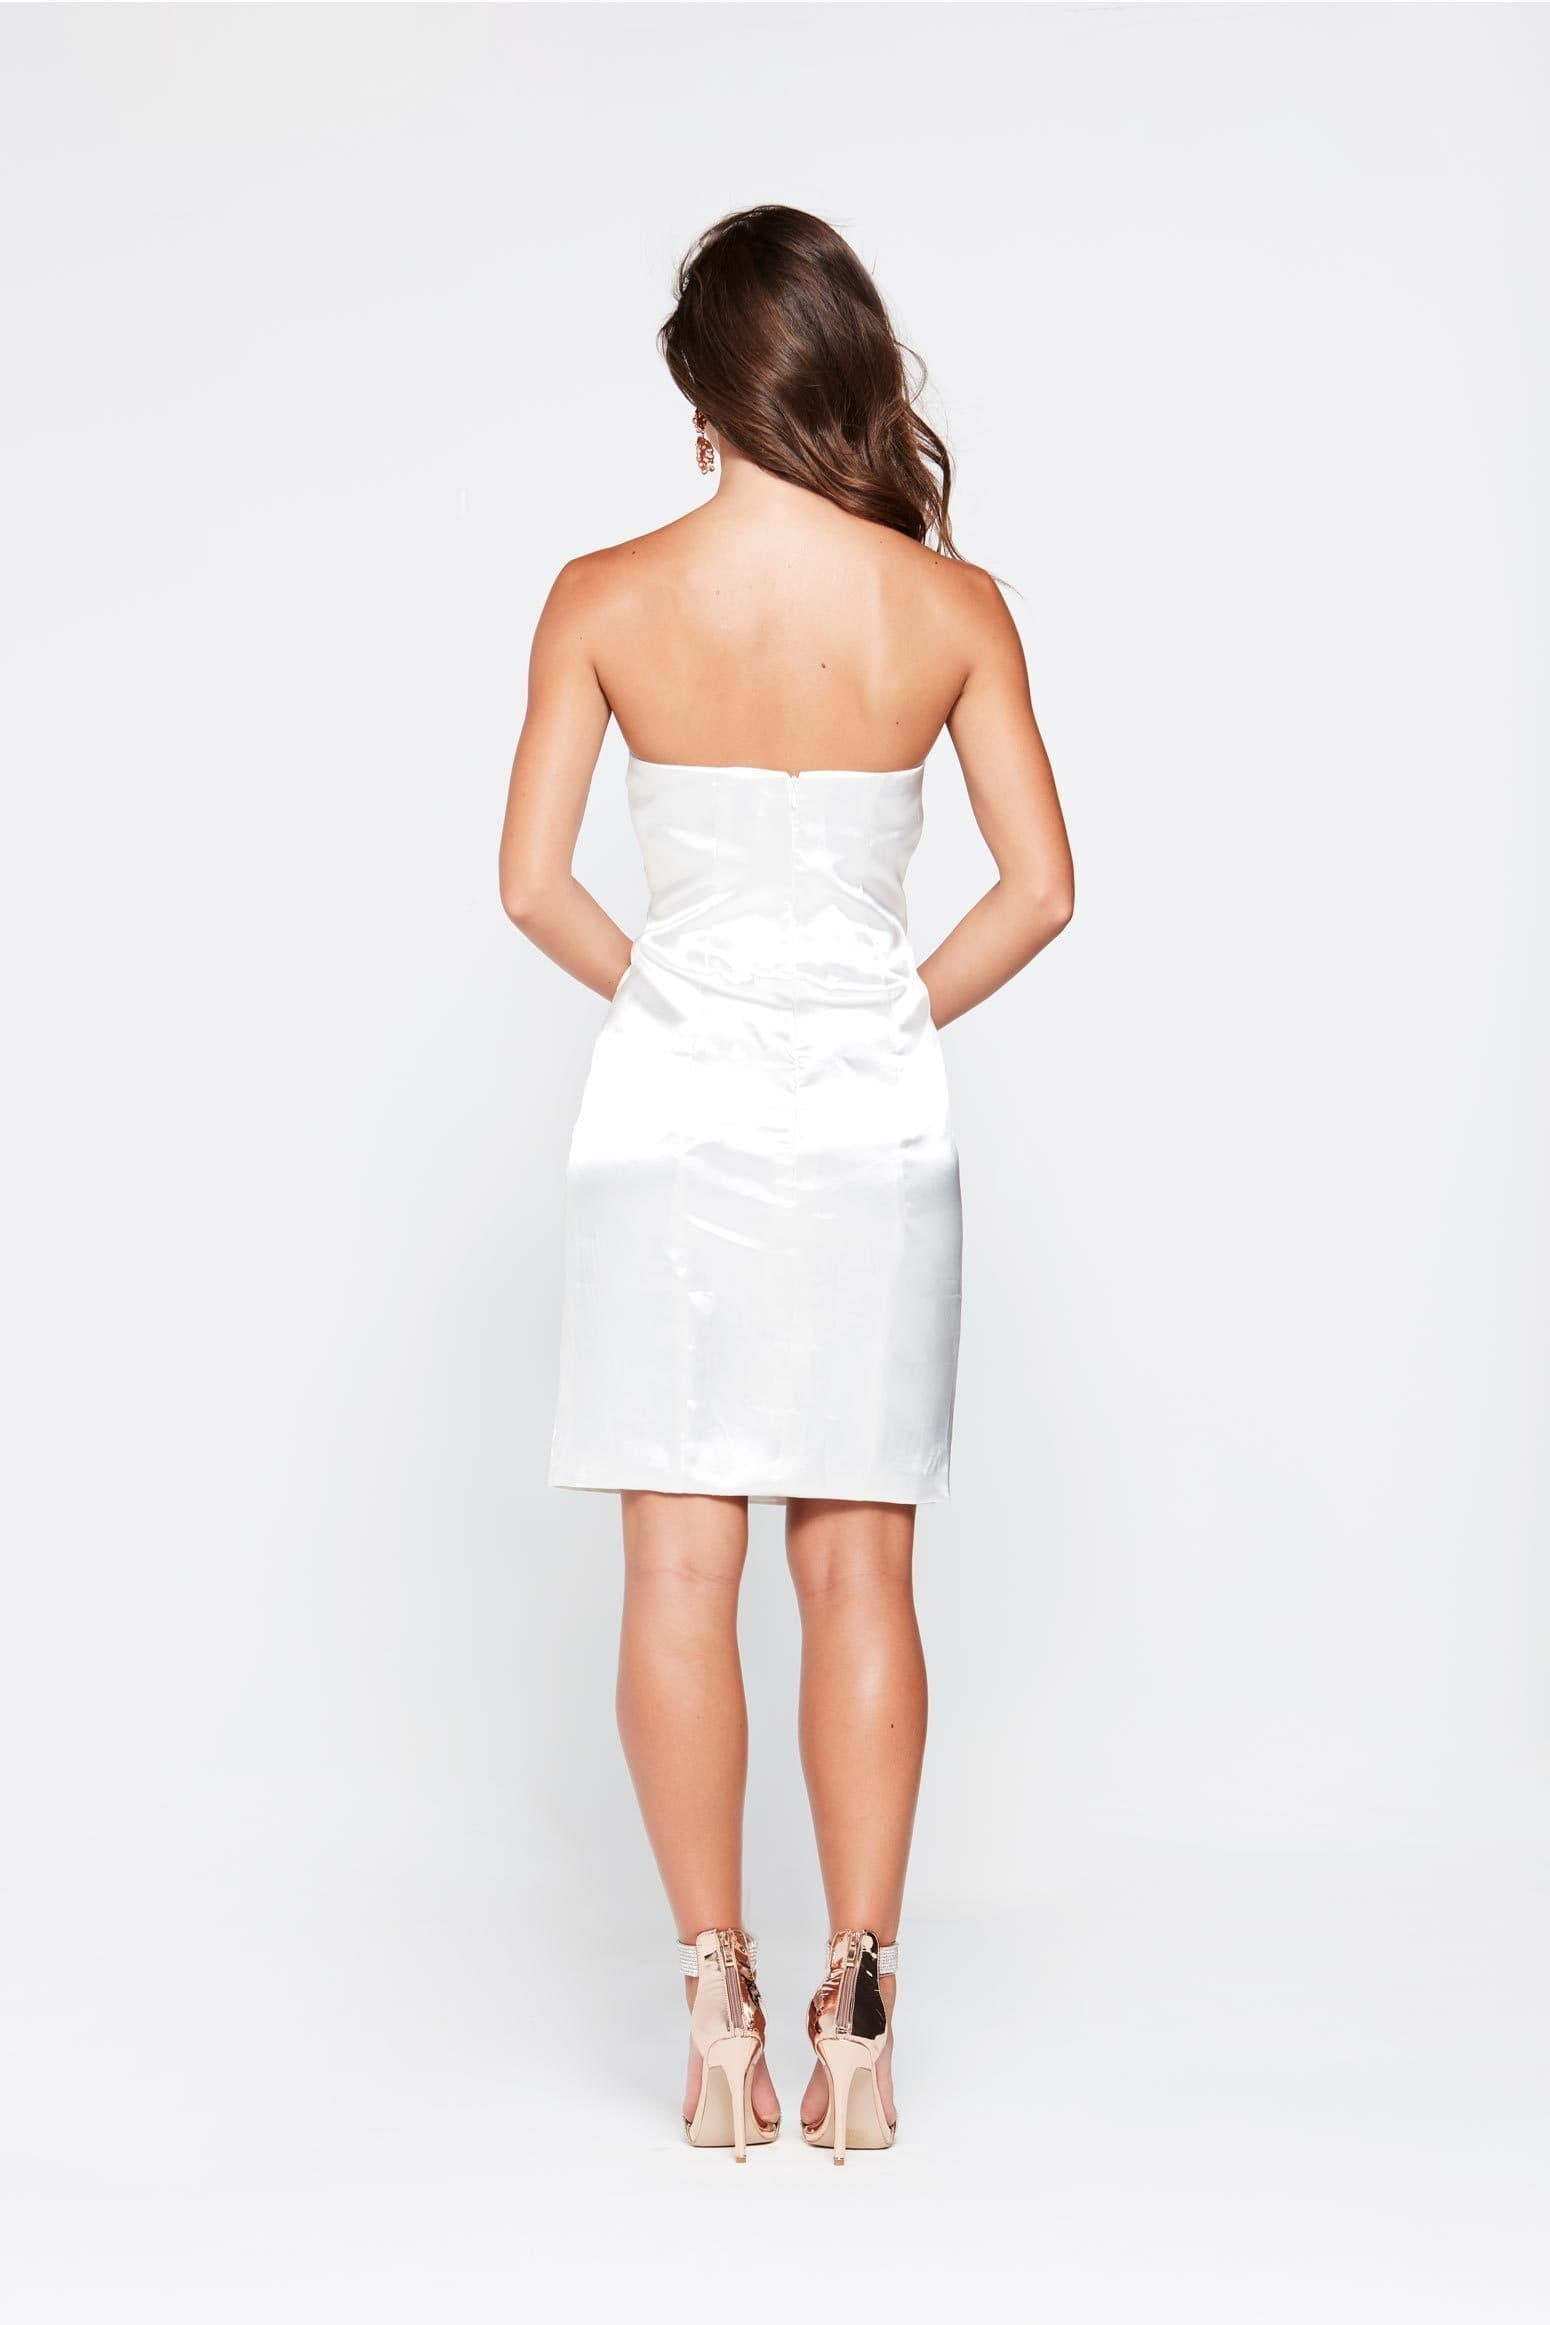 A&N Aino- White Satin Strapless Cocktail Dress with A Line Skirt